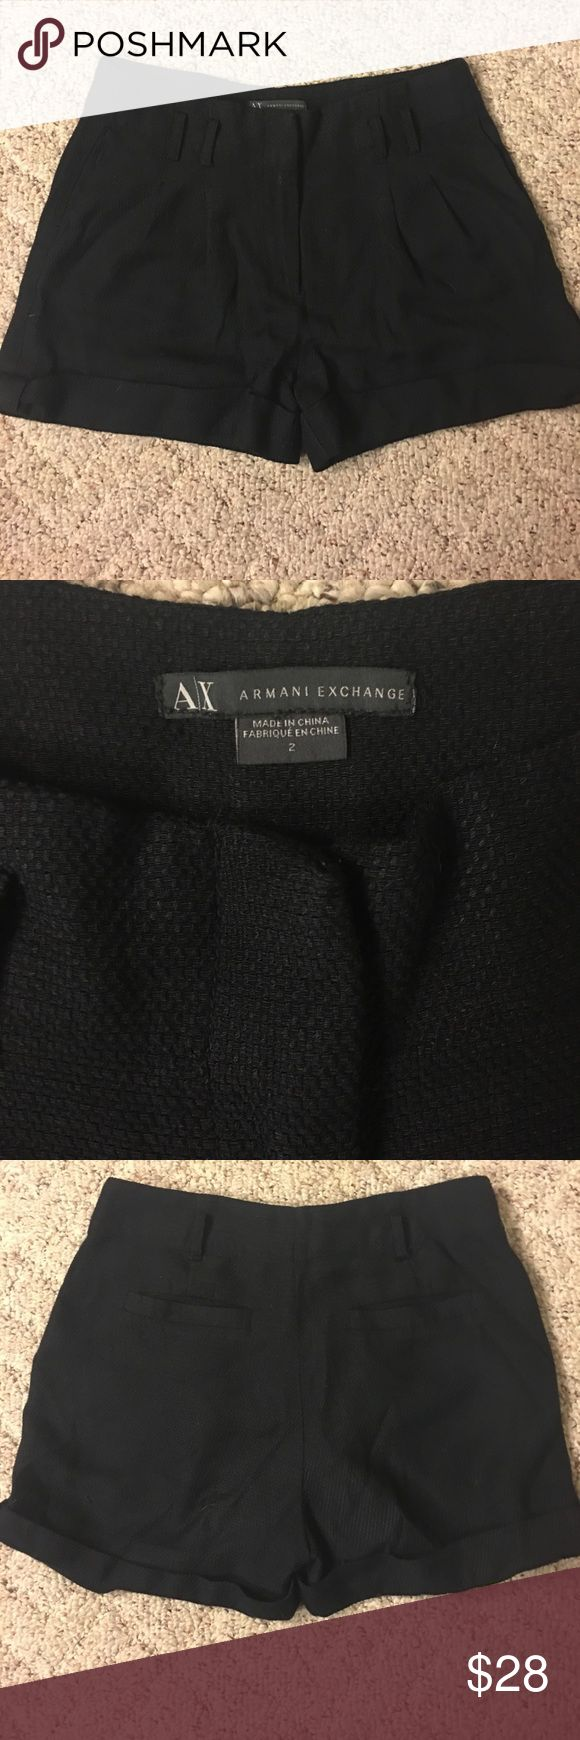 "Armani Exchange Shorts EUC! Cuffed at hem. Side pockets, two pleats on either side and two back pockets. Button and zips in front. Length from waist to bottom is approximately 13"" waist measurement 15"" hip measurement approximately 18"". Fabric content is Rayon and polyester blend. Has a nice weave in fabric and is super soft! ❤️❤️ Armani Exchange Shorts"